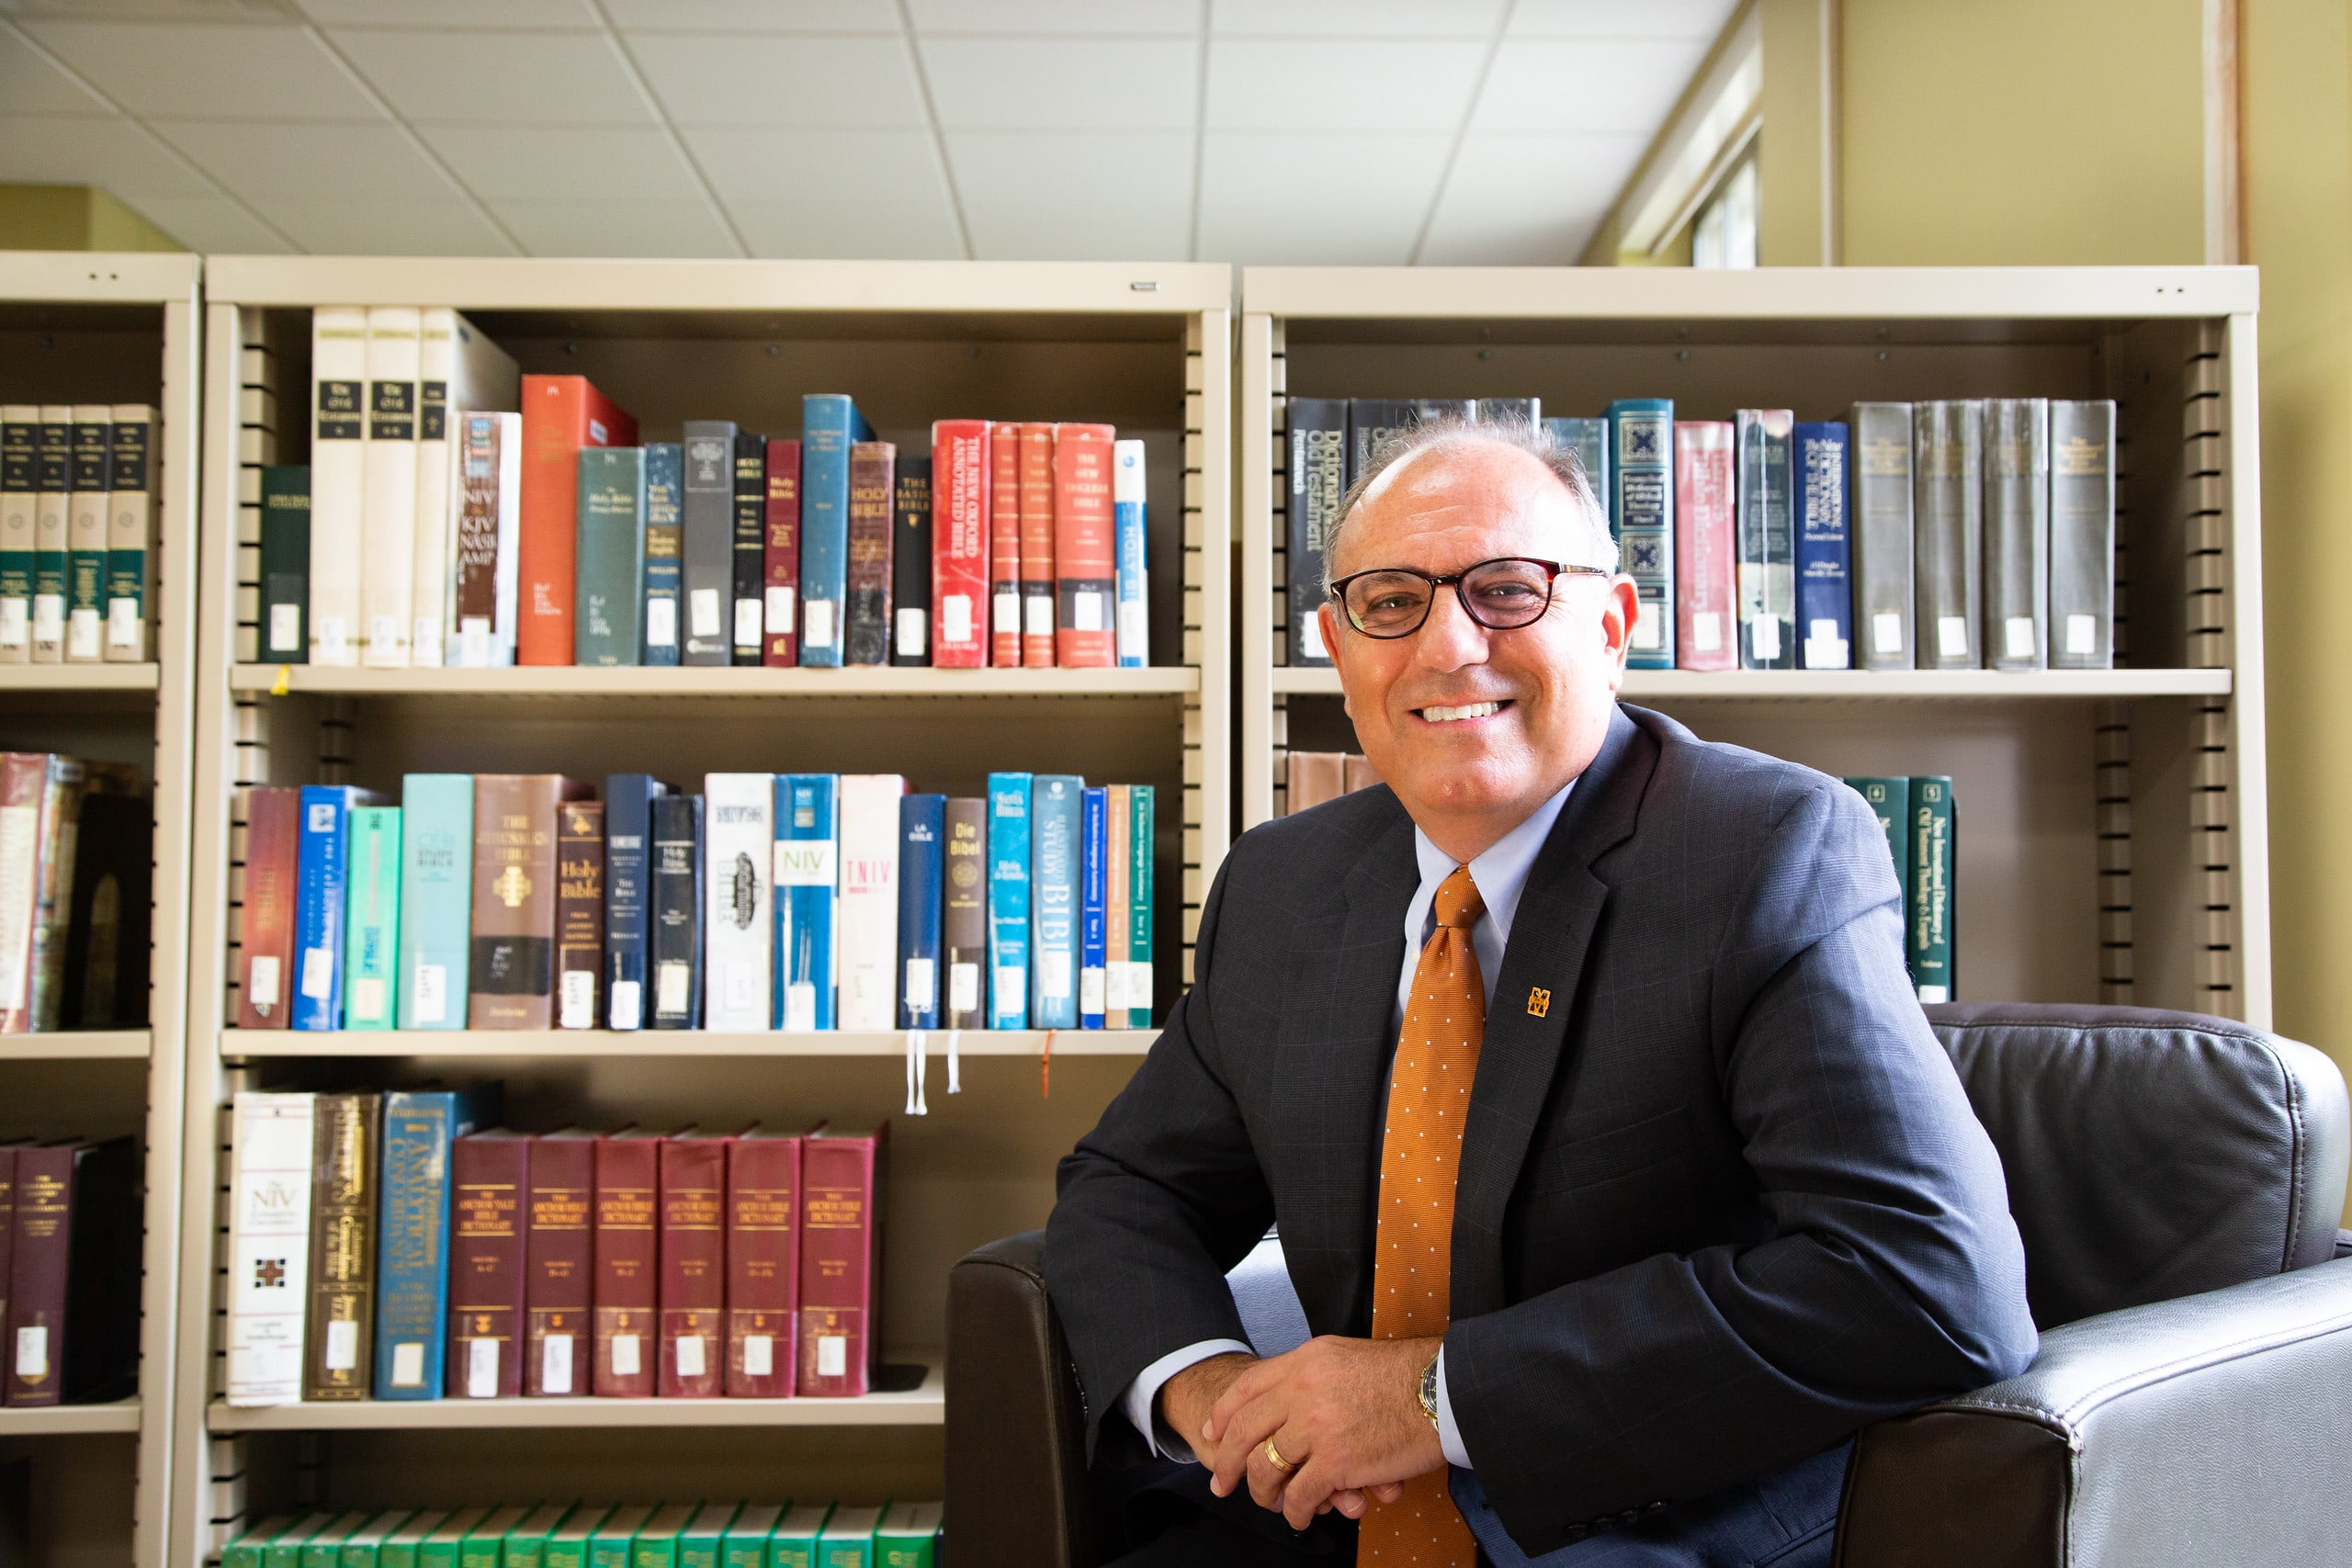 President Greer sitting in the library